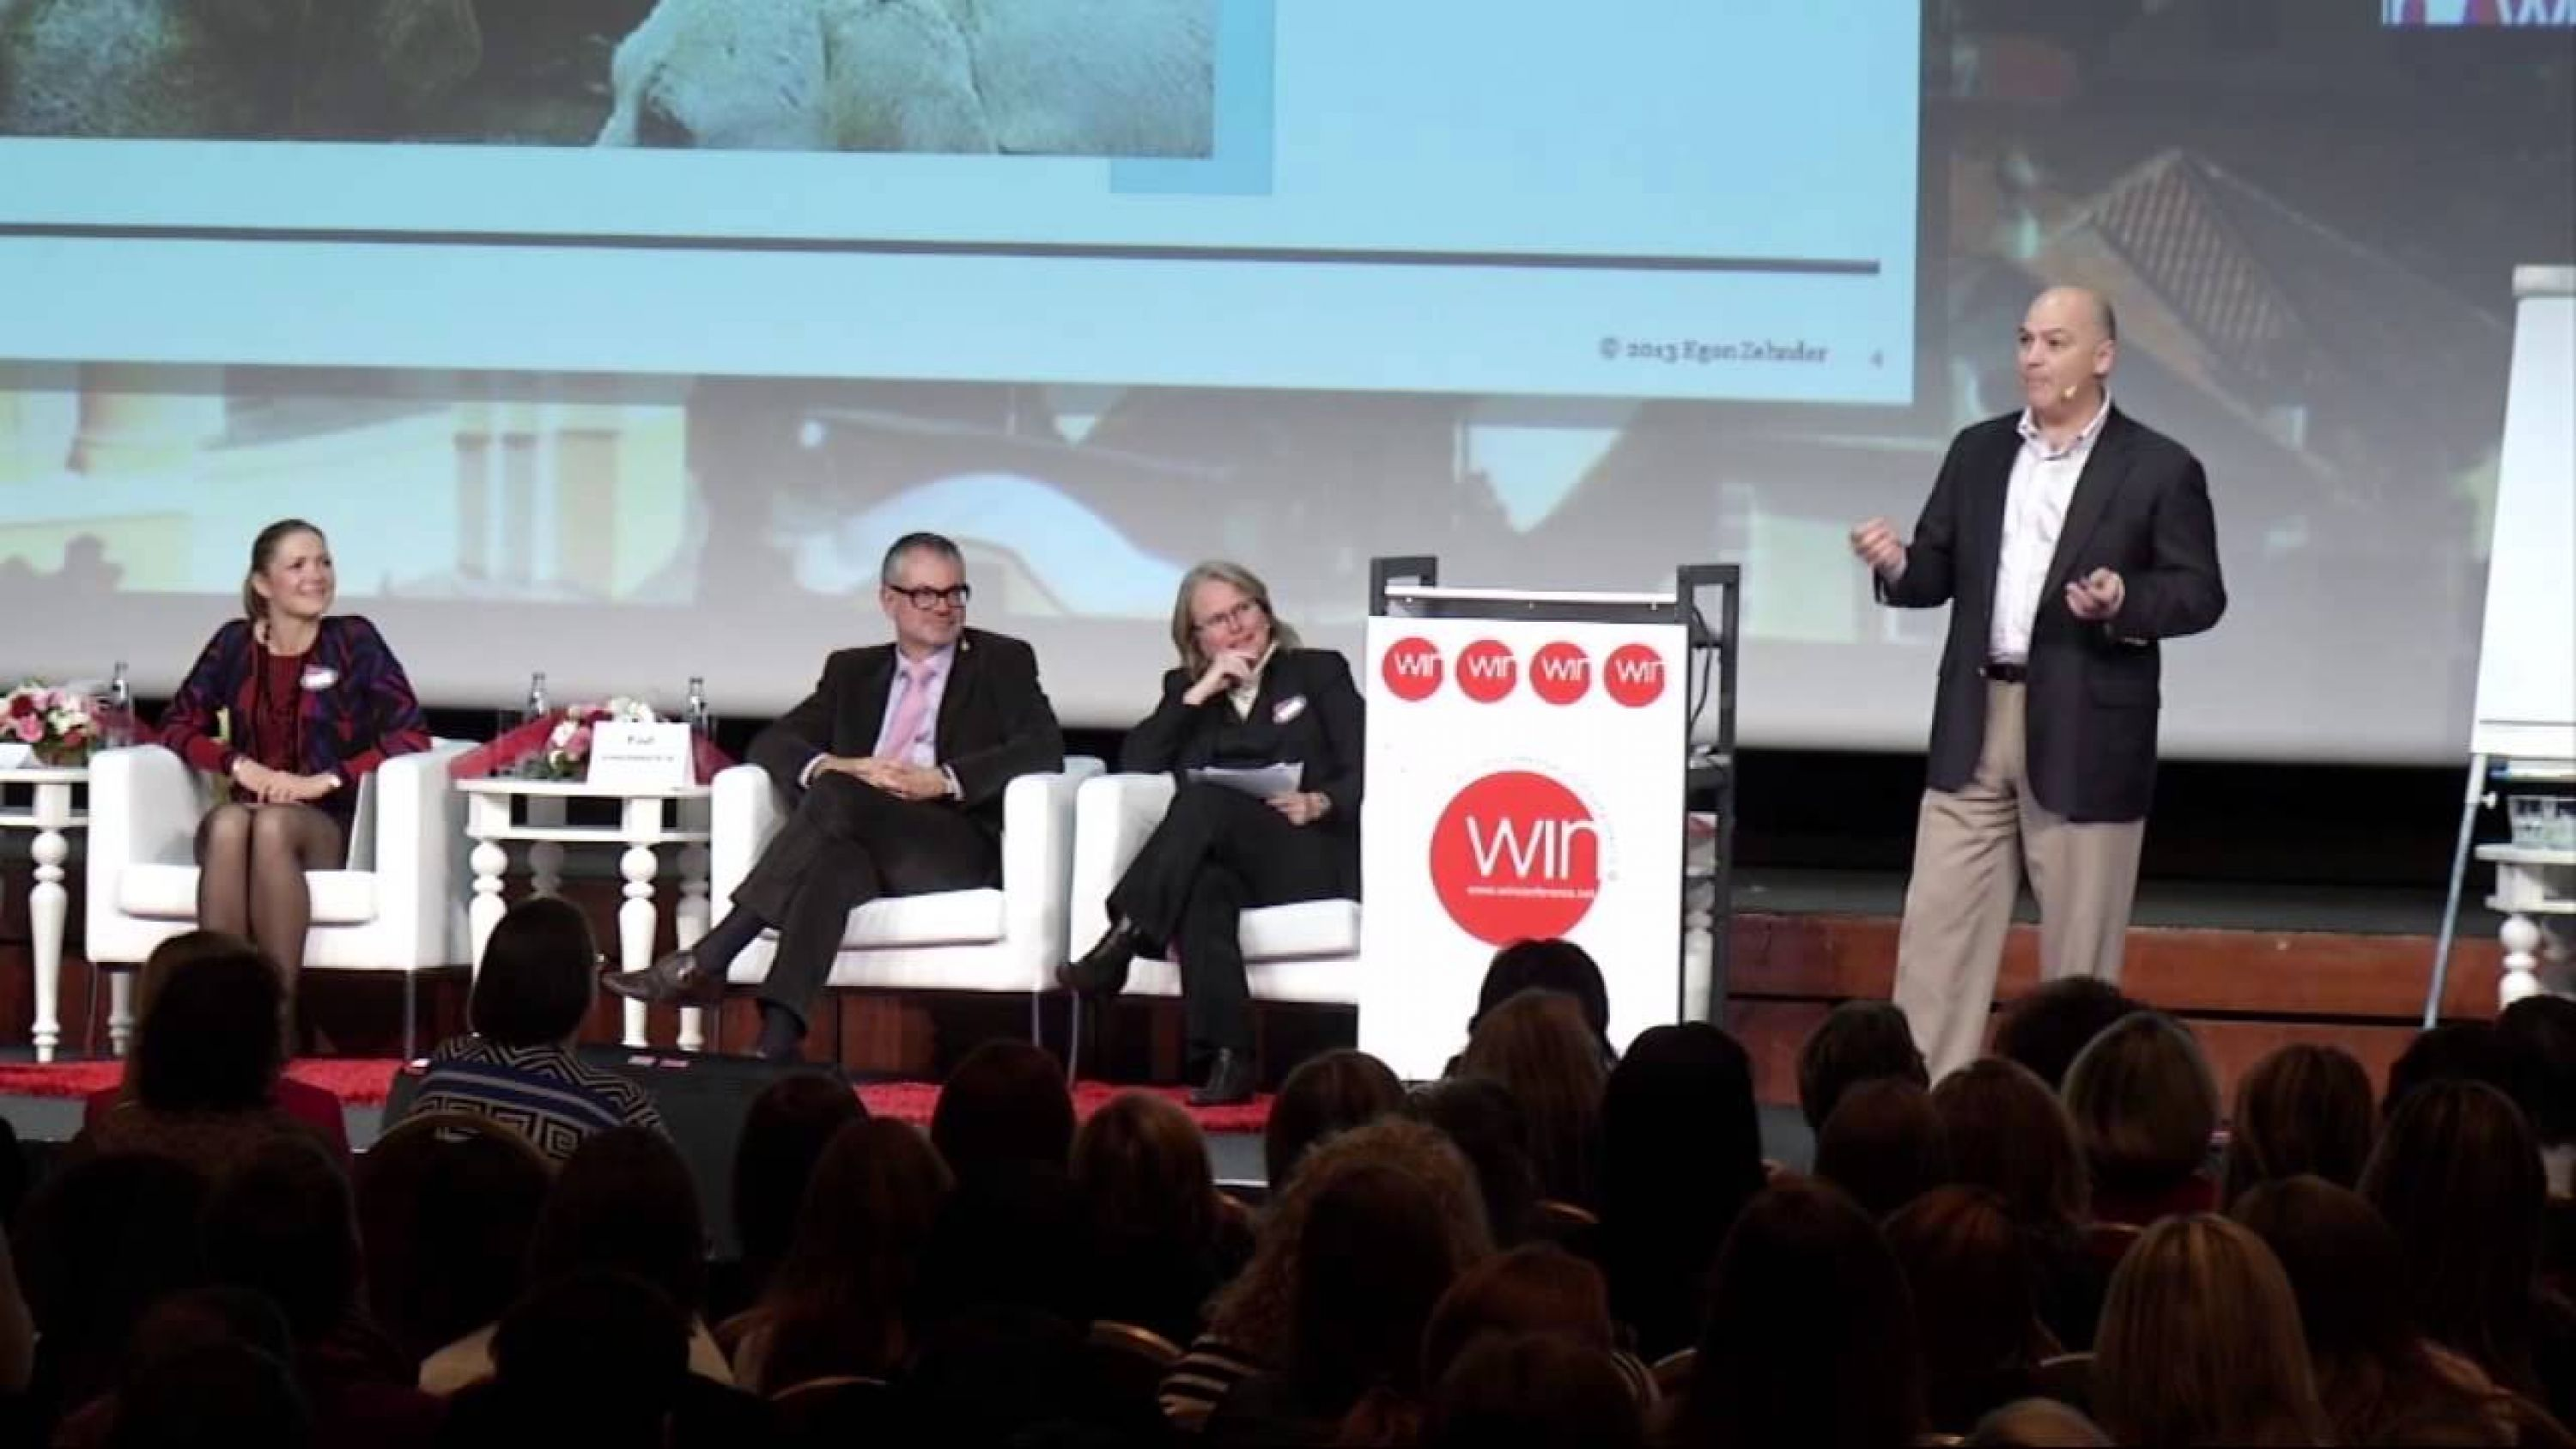 View Michel's plenary speech at the 2013 WINConference